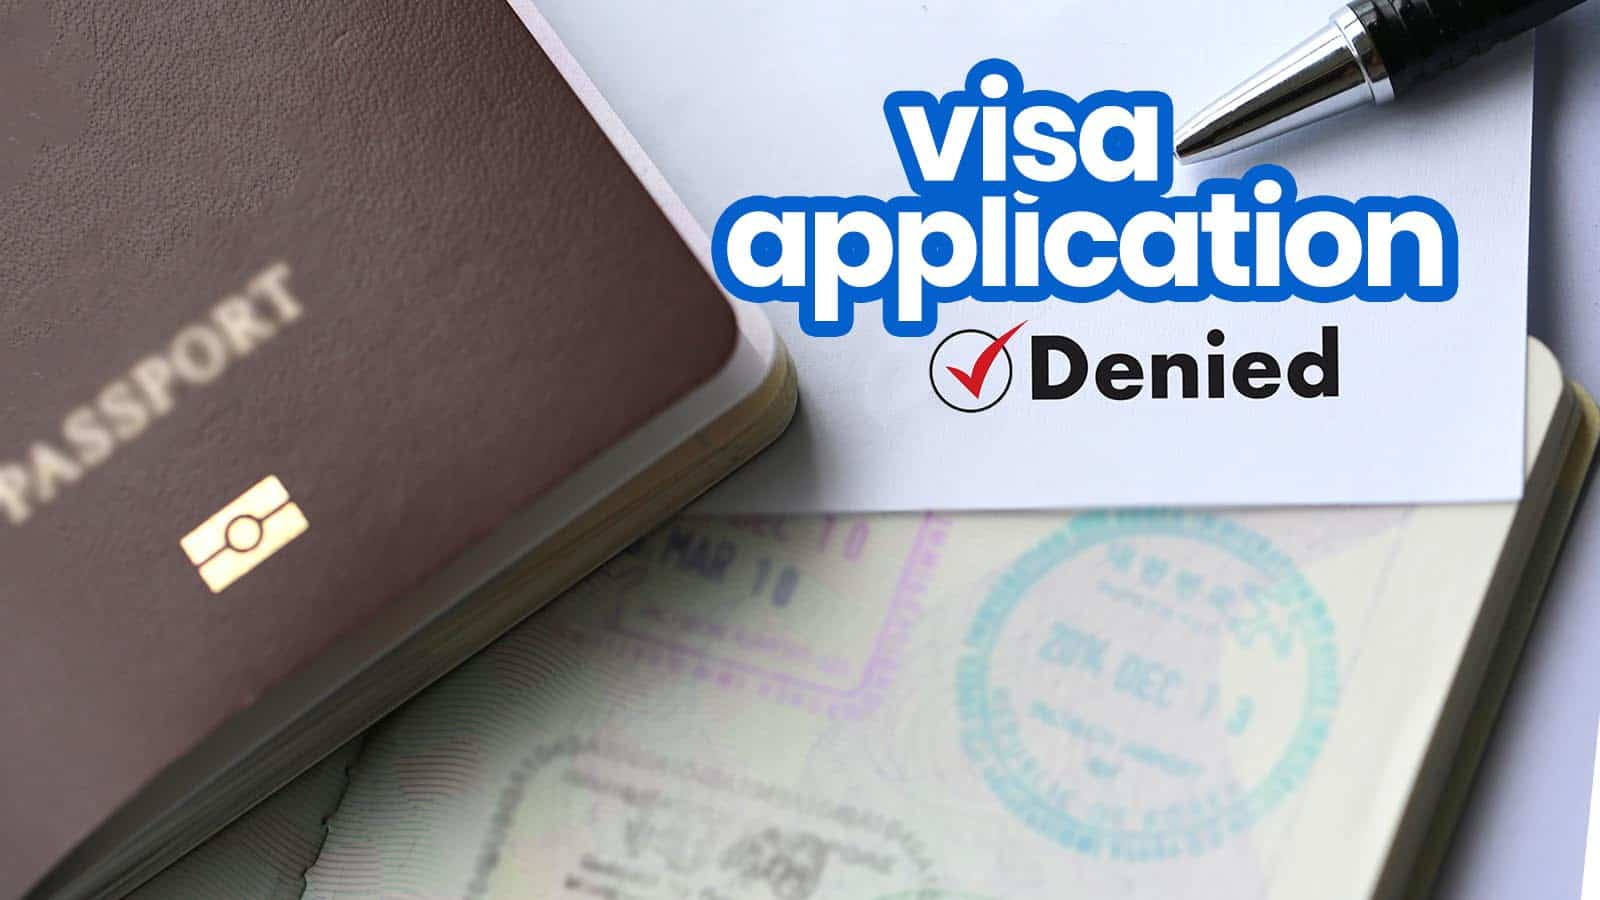 How Quickly Can I Apply for a Visa after Rejection